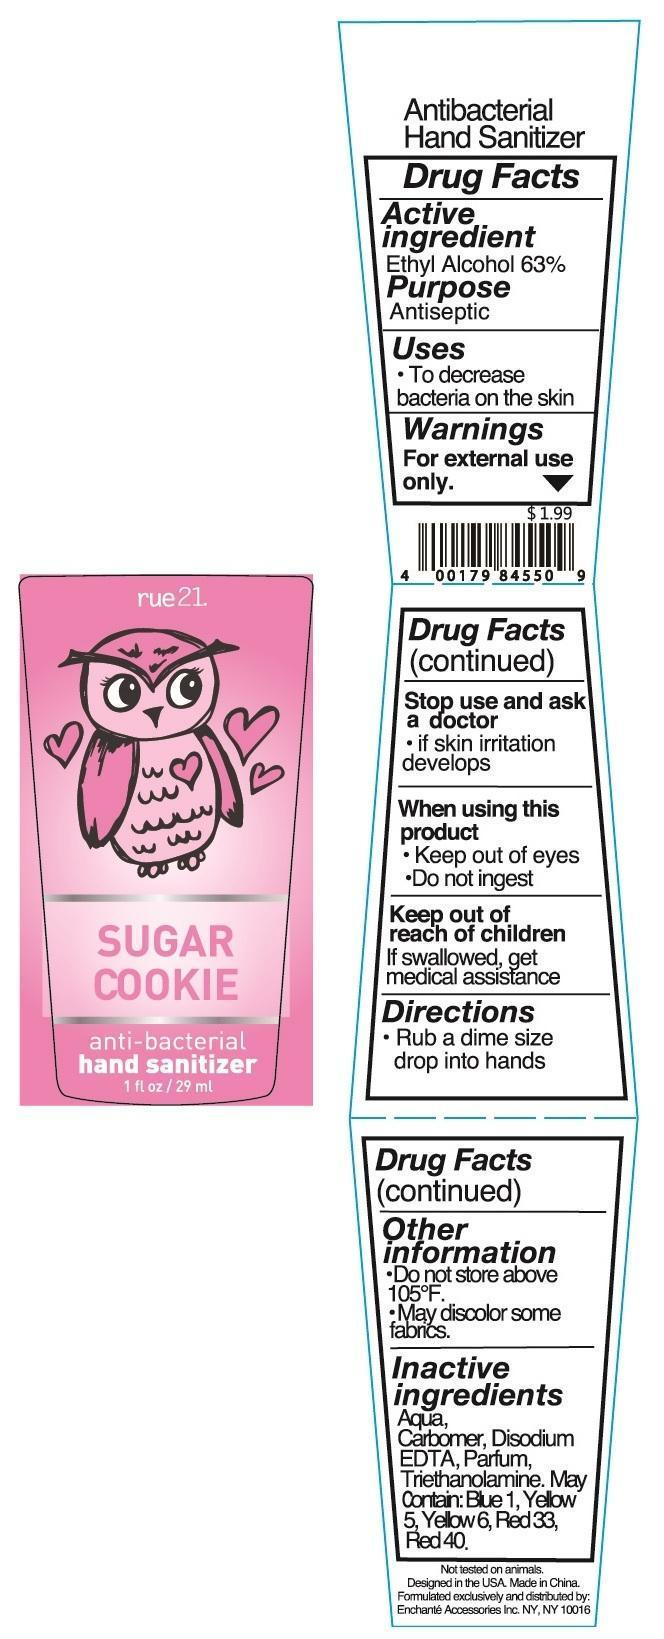 Rue 21 Sugar Cookie Anti Bacterial Hand Sanitizer (Alcohol) Liquid [Enchante Accessories Inc. ]